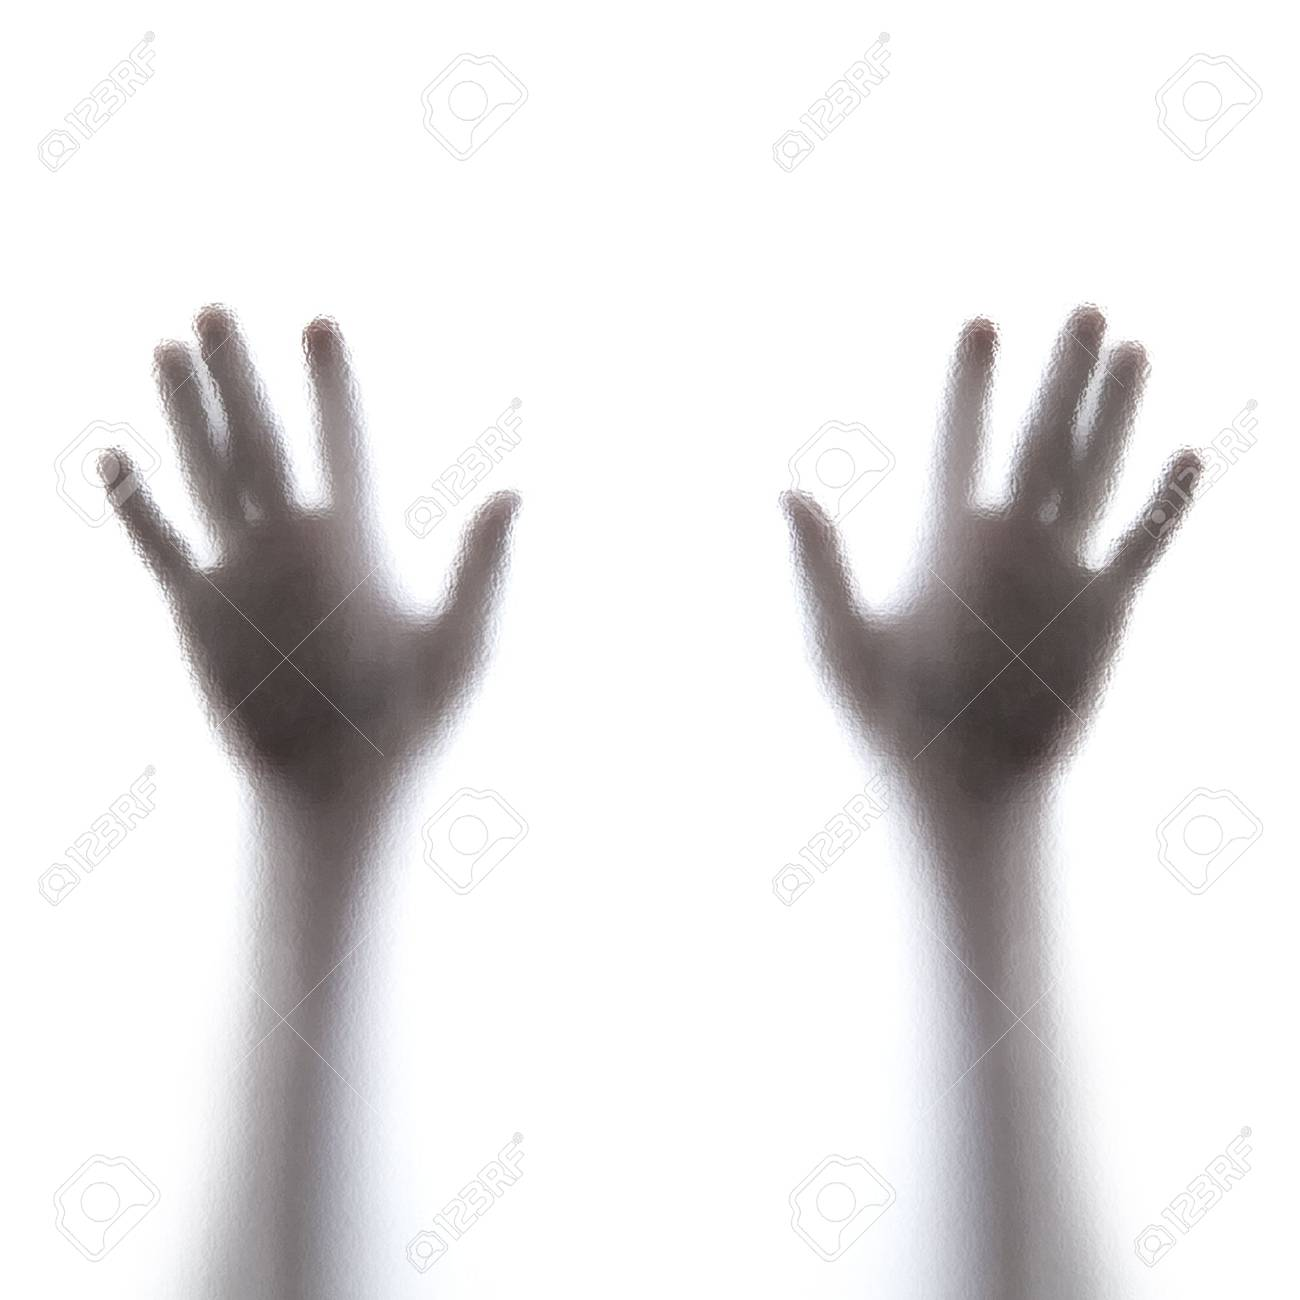 Shadow hands of the Man behind frosted glass Stock Photo - 18587726